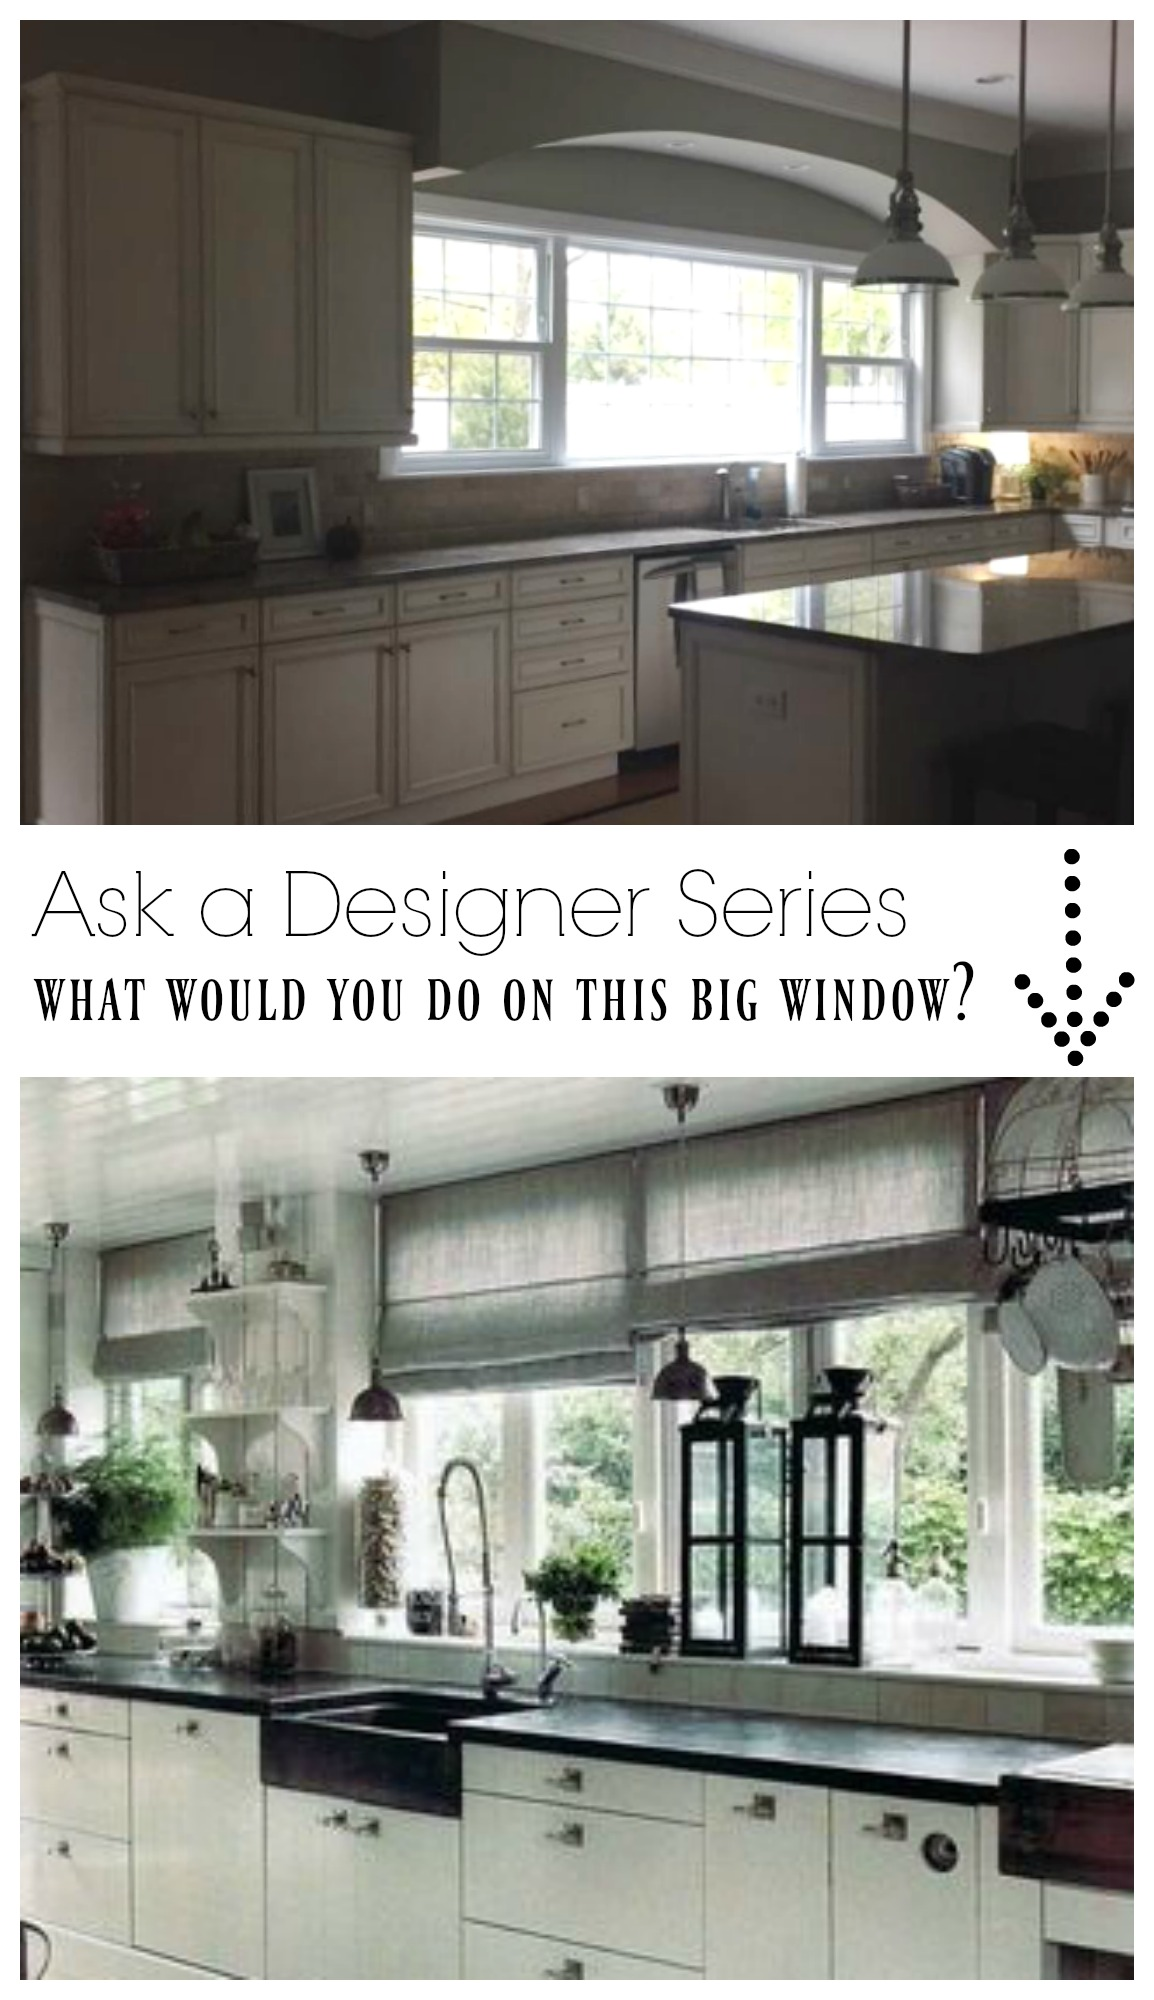 Ask a Designer Series- What would you do on this large Kitchen Window?